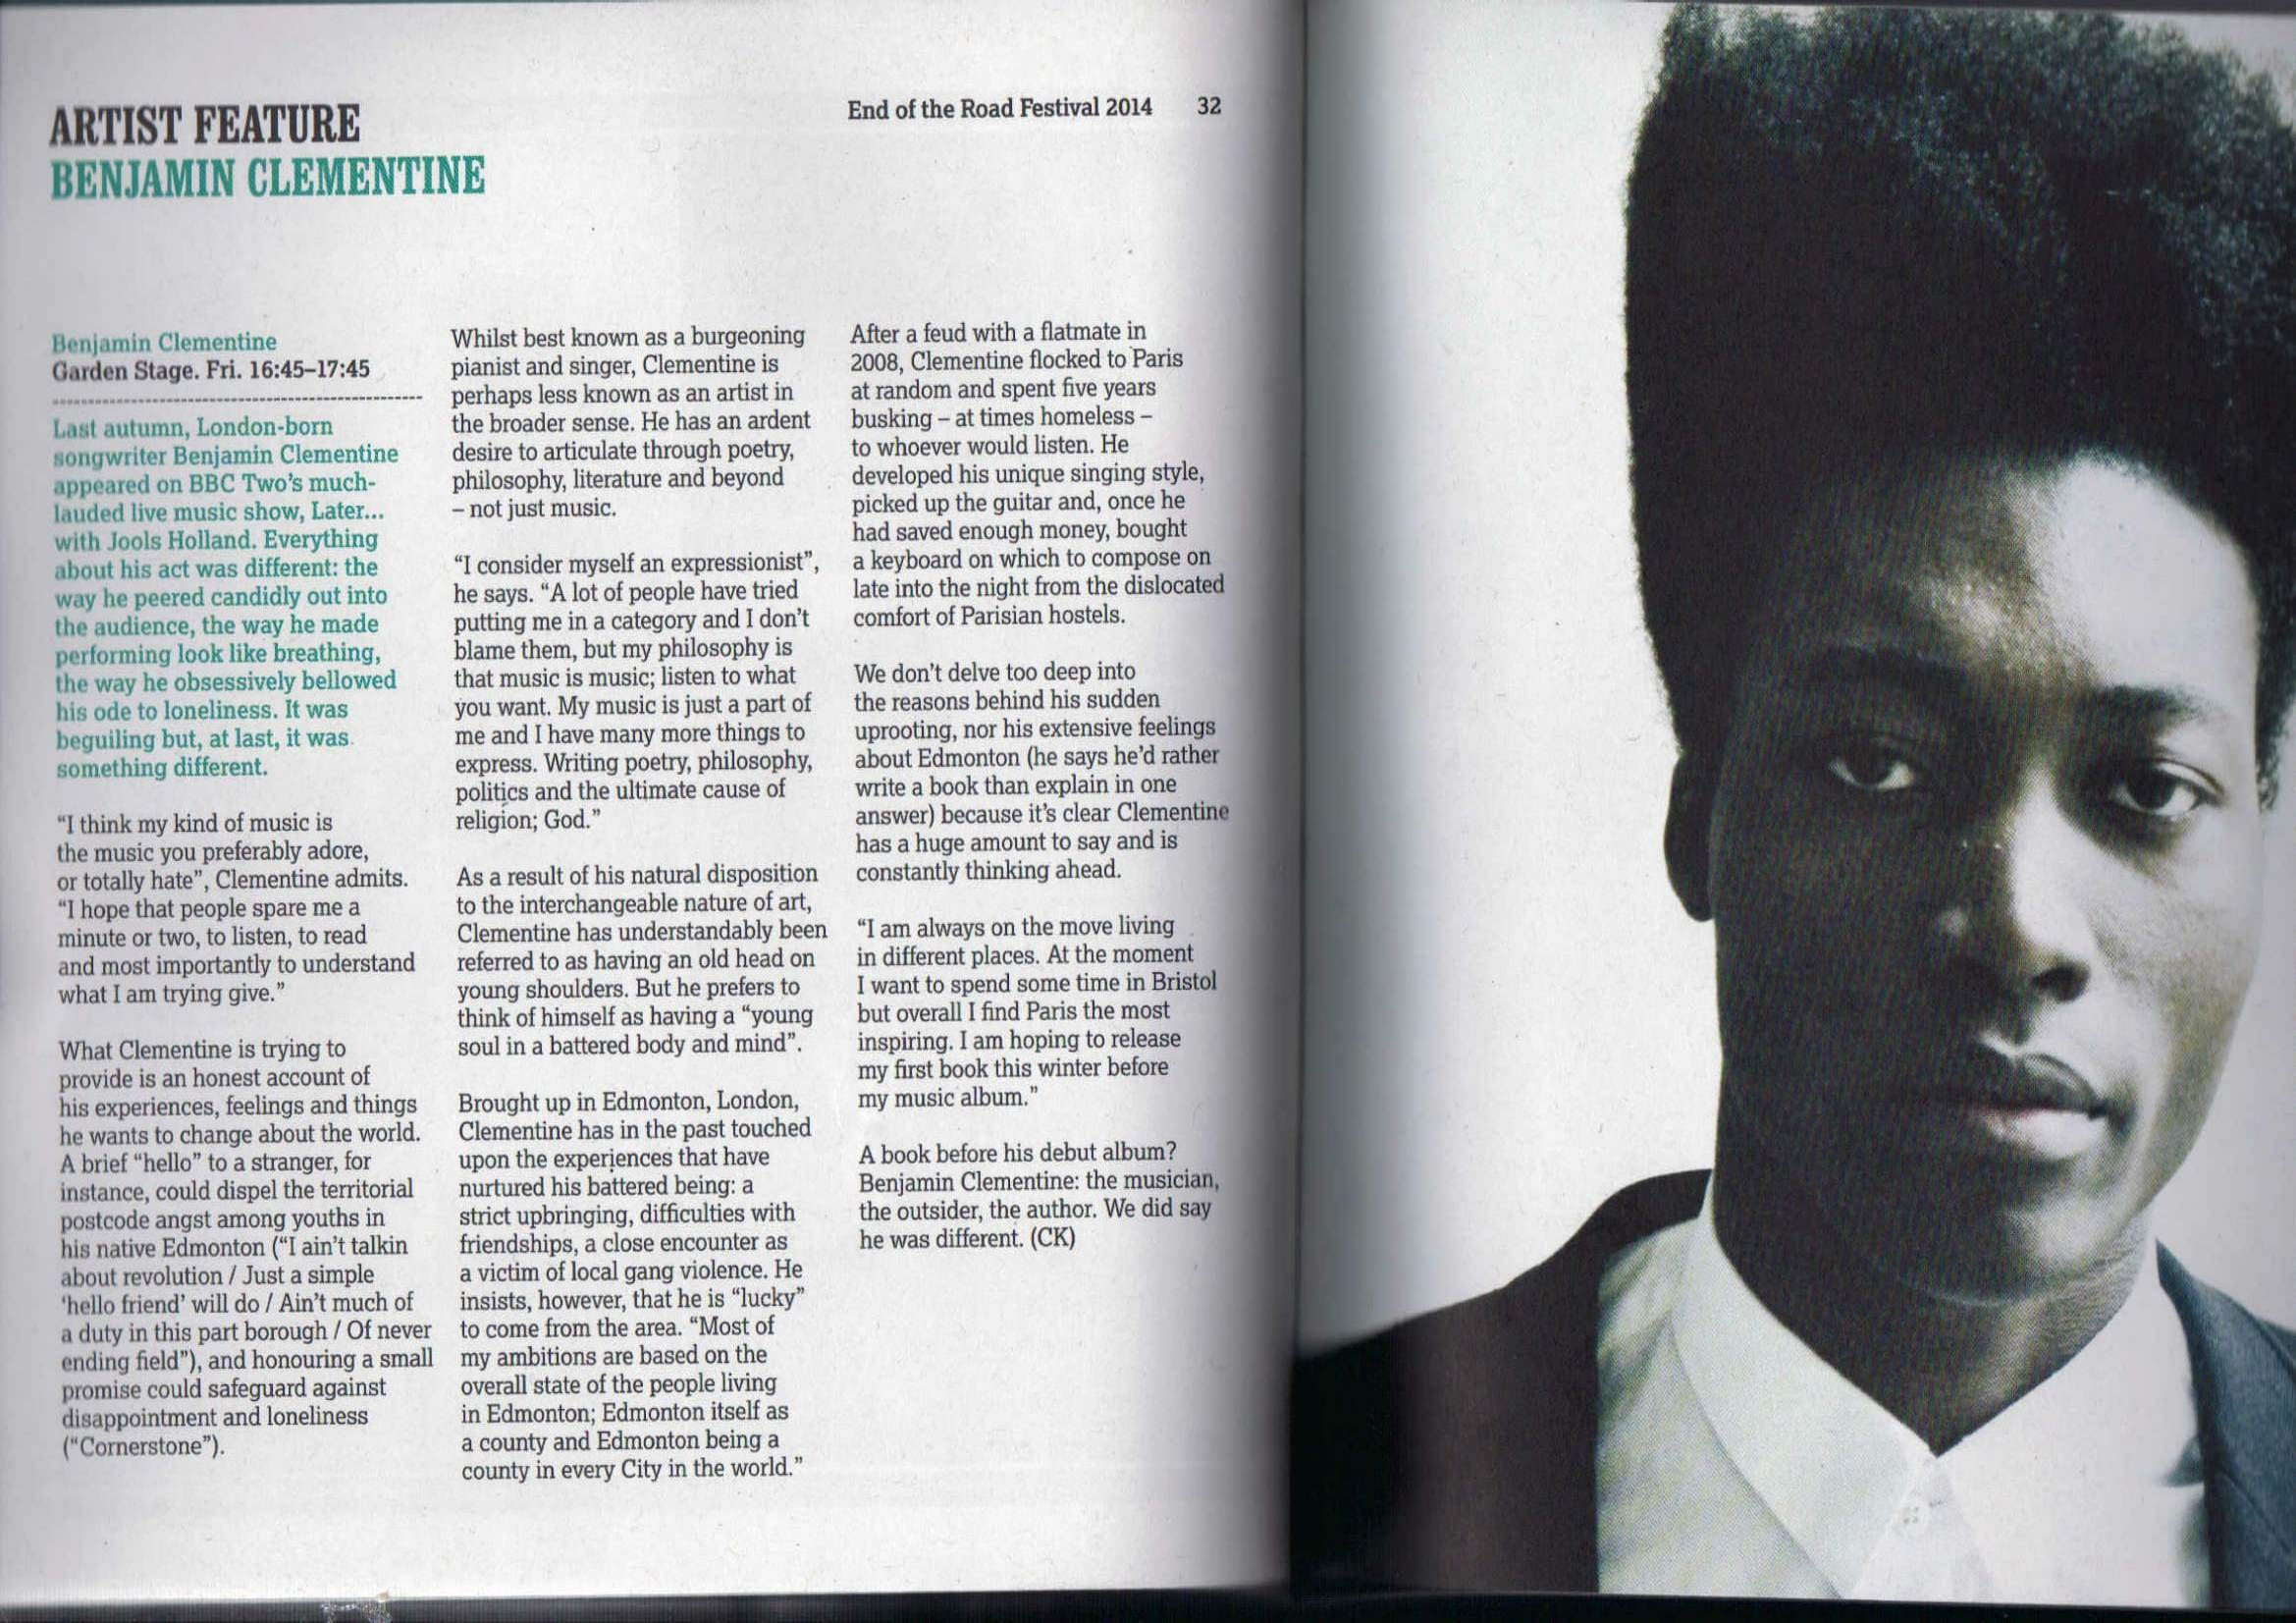 Interview_Benjamin Clementine_End of the Road 2014 festival programme-1.jpg